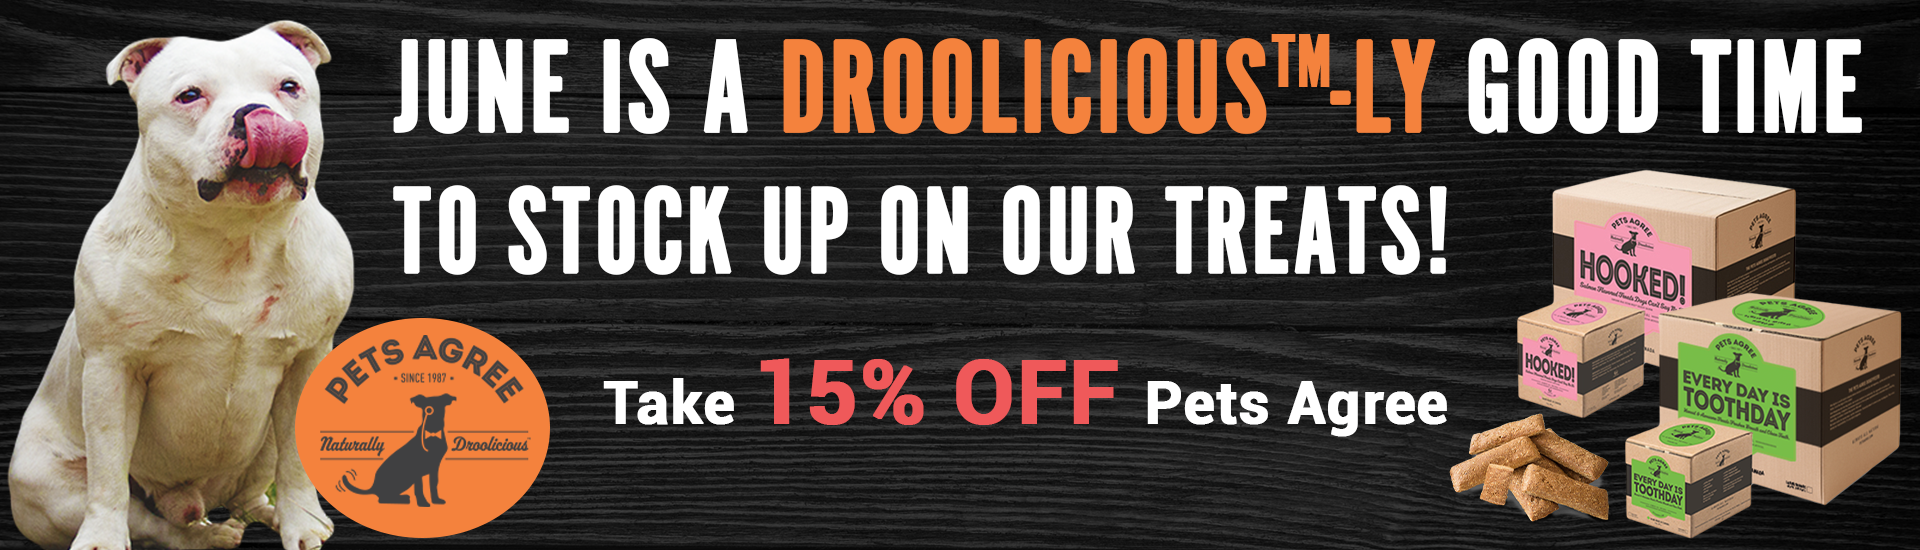 June is a Droolicious™-ly good time to stock up on our treats! Take 15% off Pets Agree.